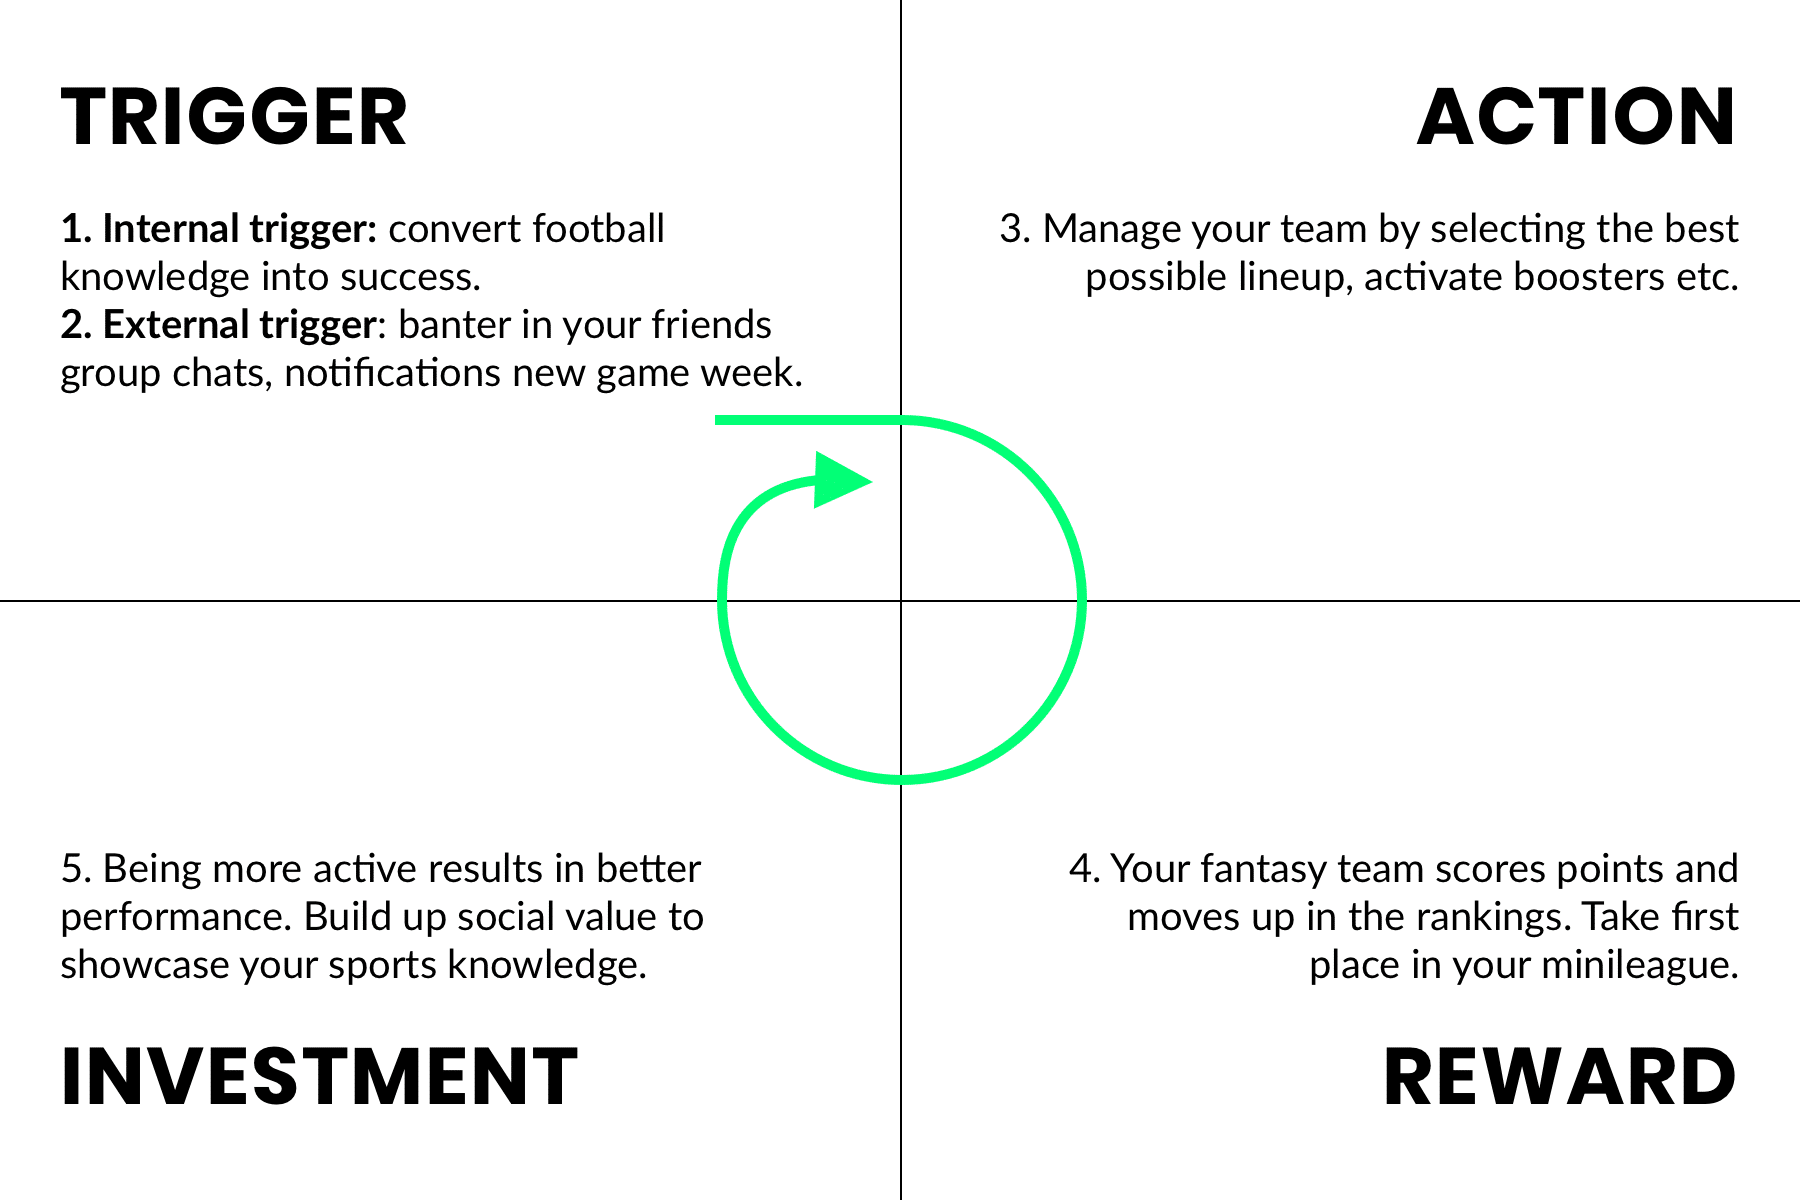 Drive engagement with Hooked Model Fantasy Sports